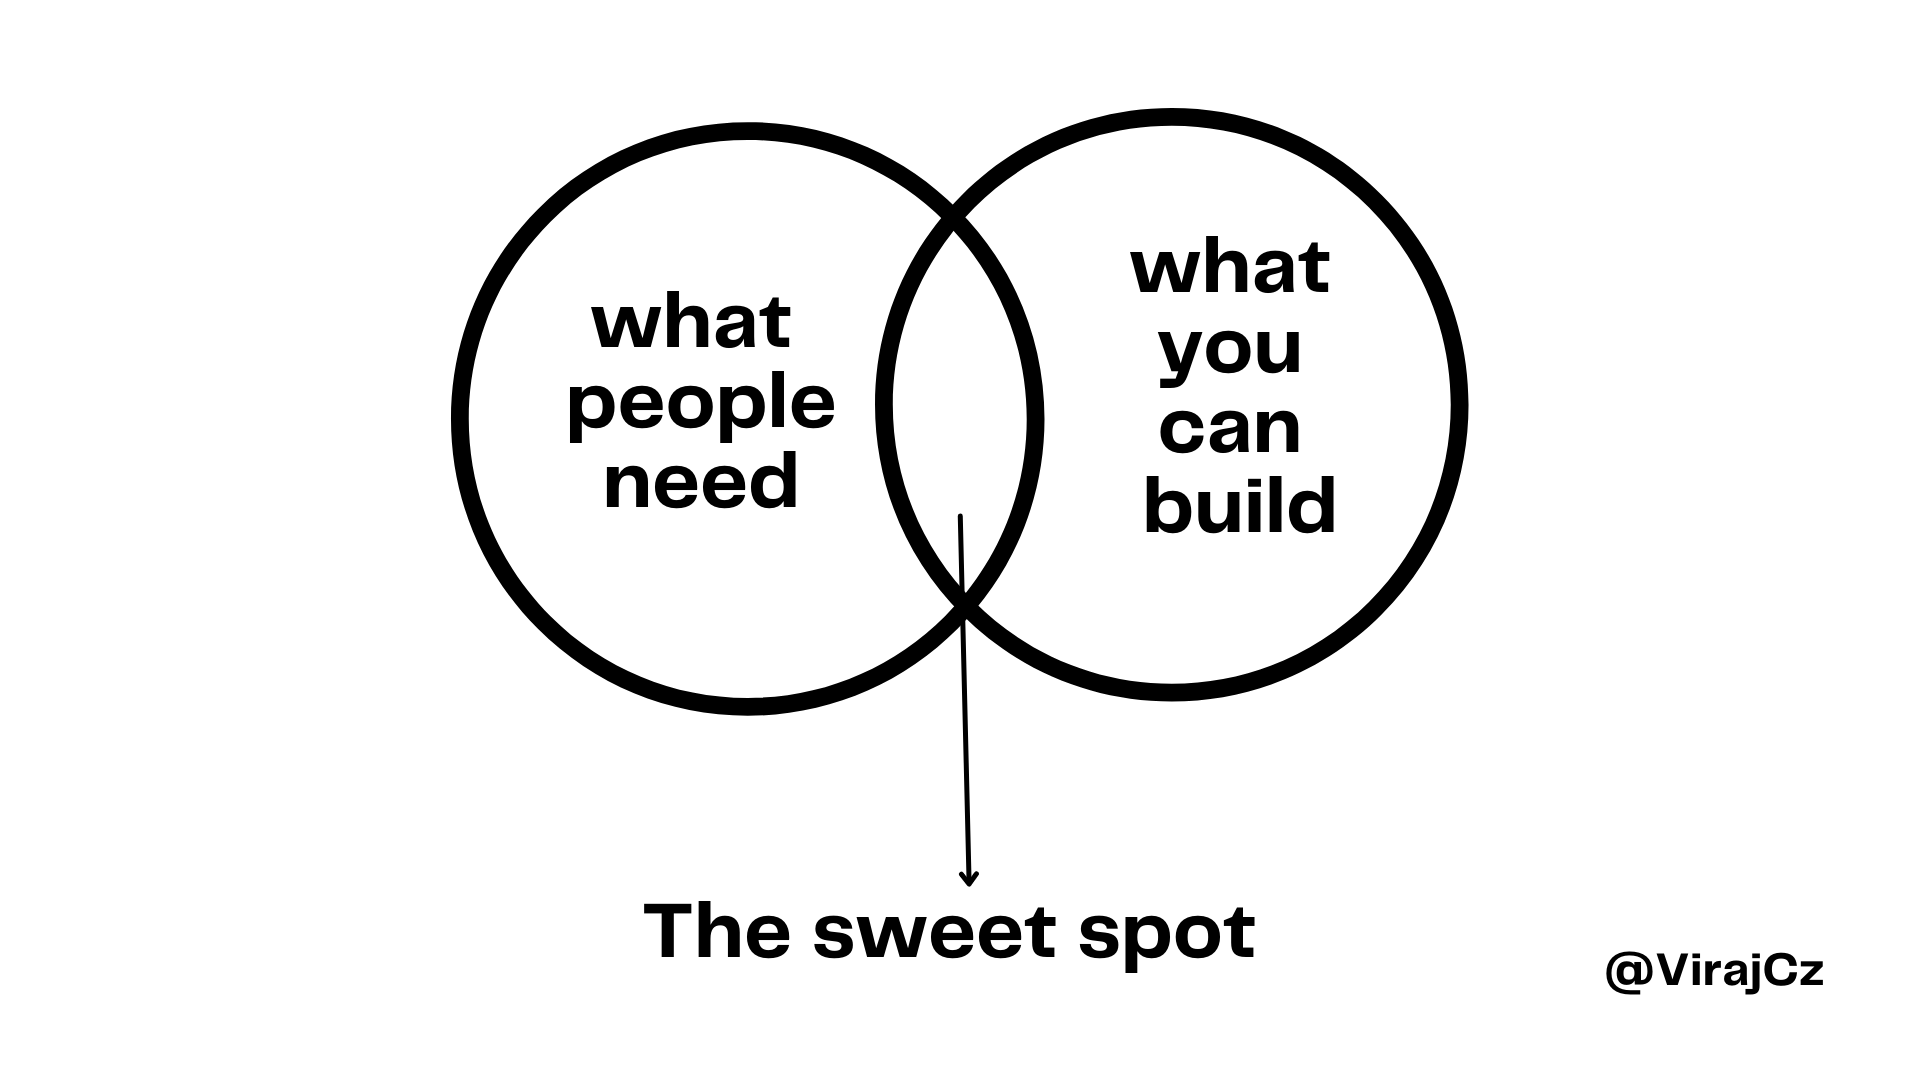 Solving problems: A Builder's vs a Seller's approach